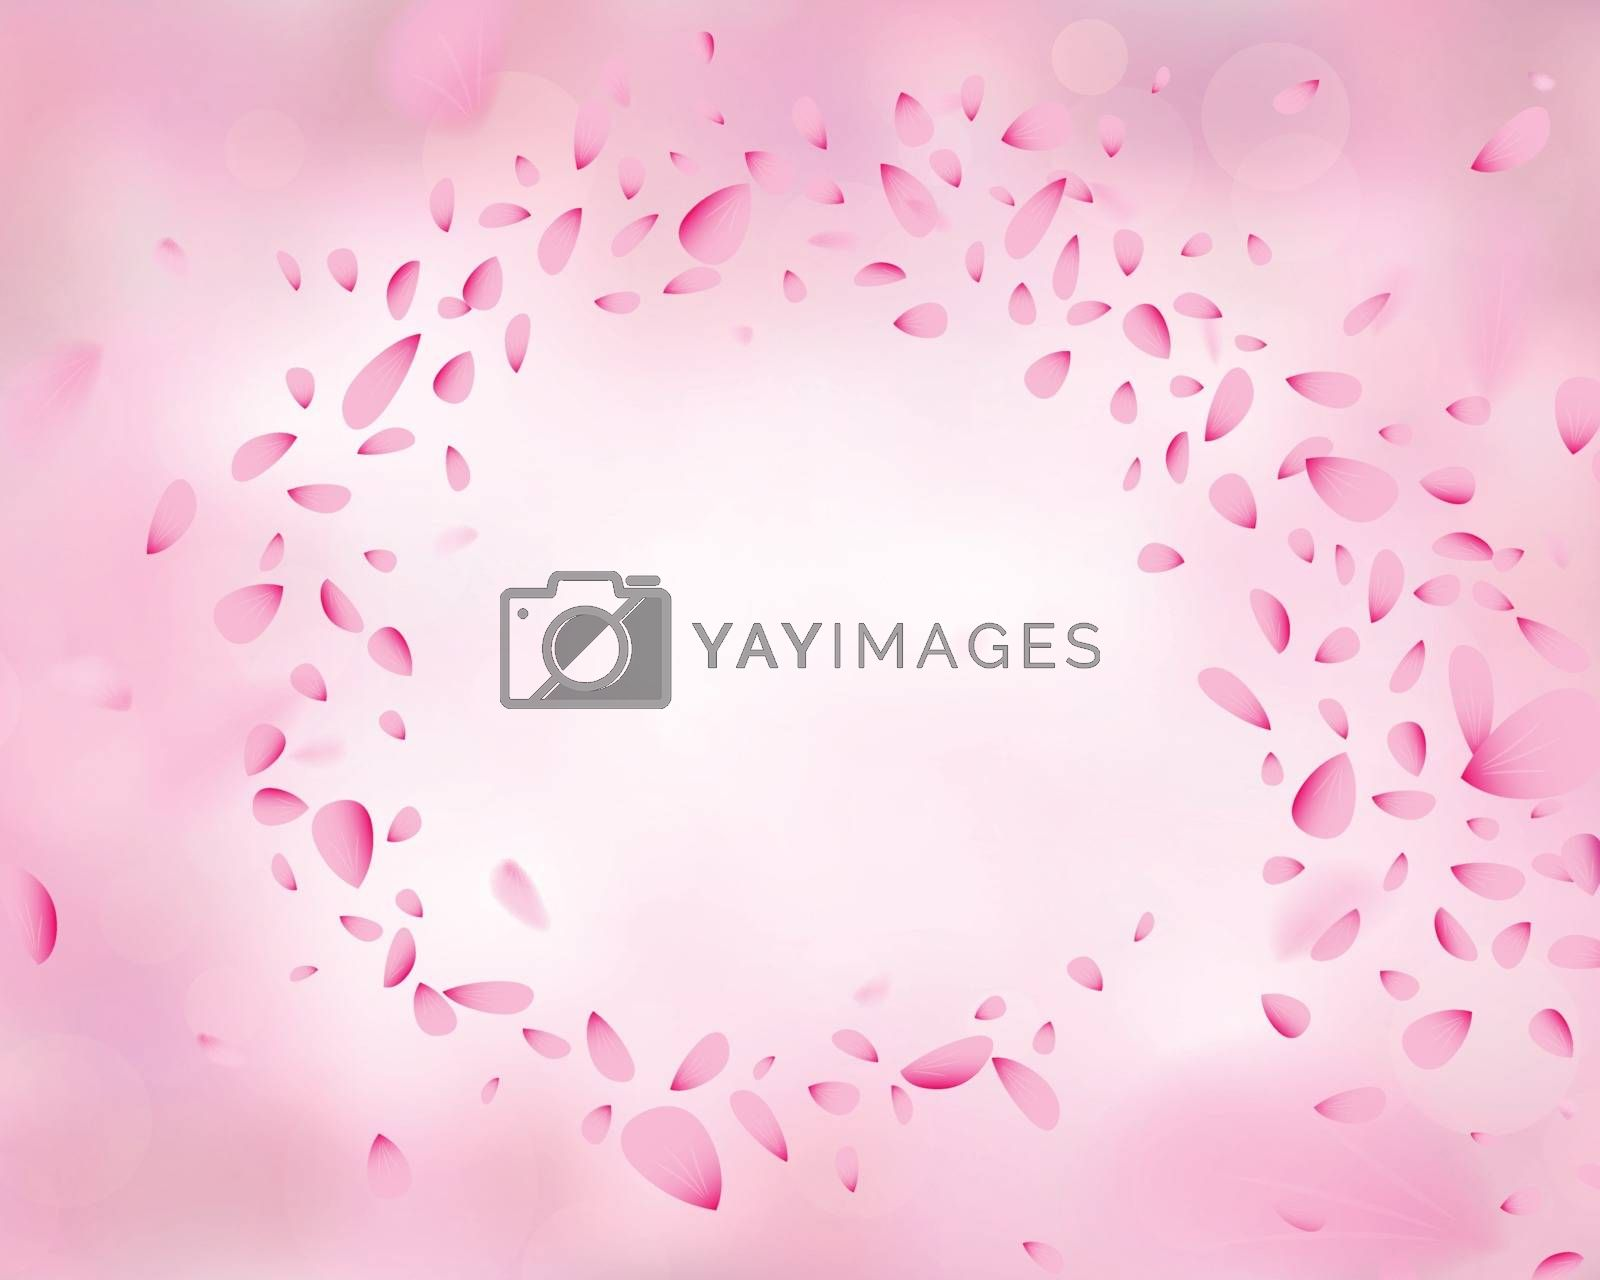 Swirling pink flower petals in the wind. Soft elegant 3D illustration background with bokeh and blurred effect.